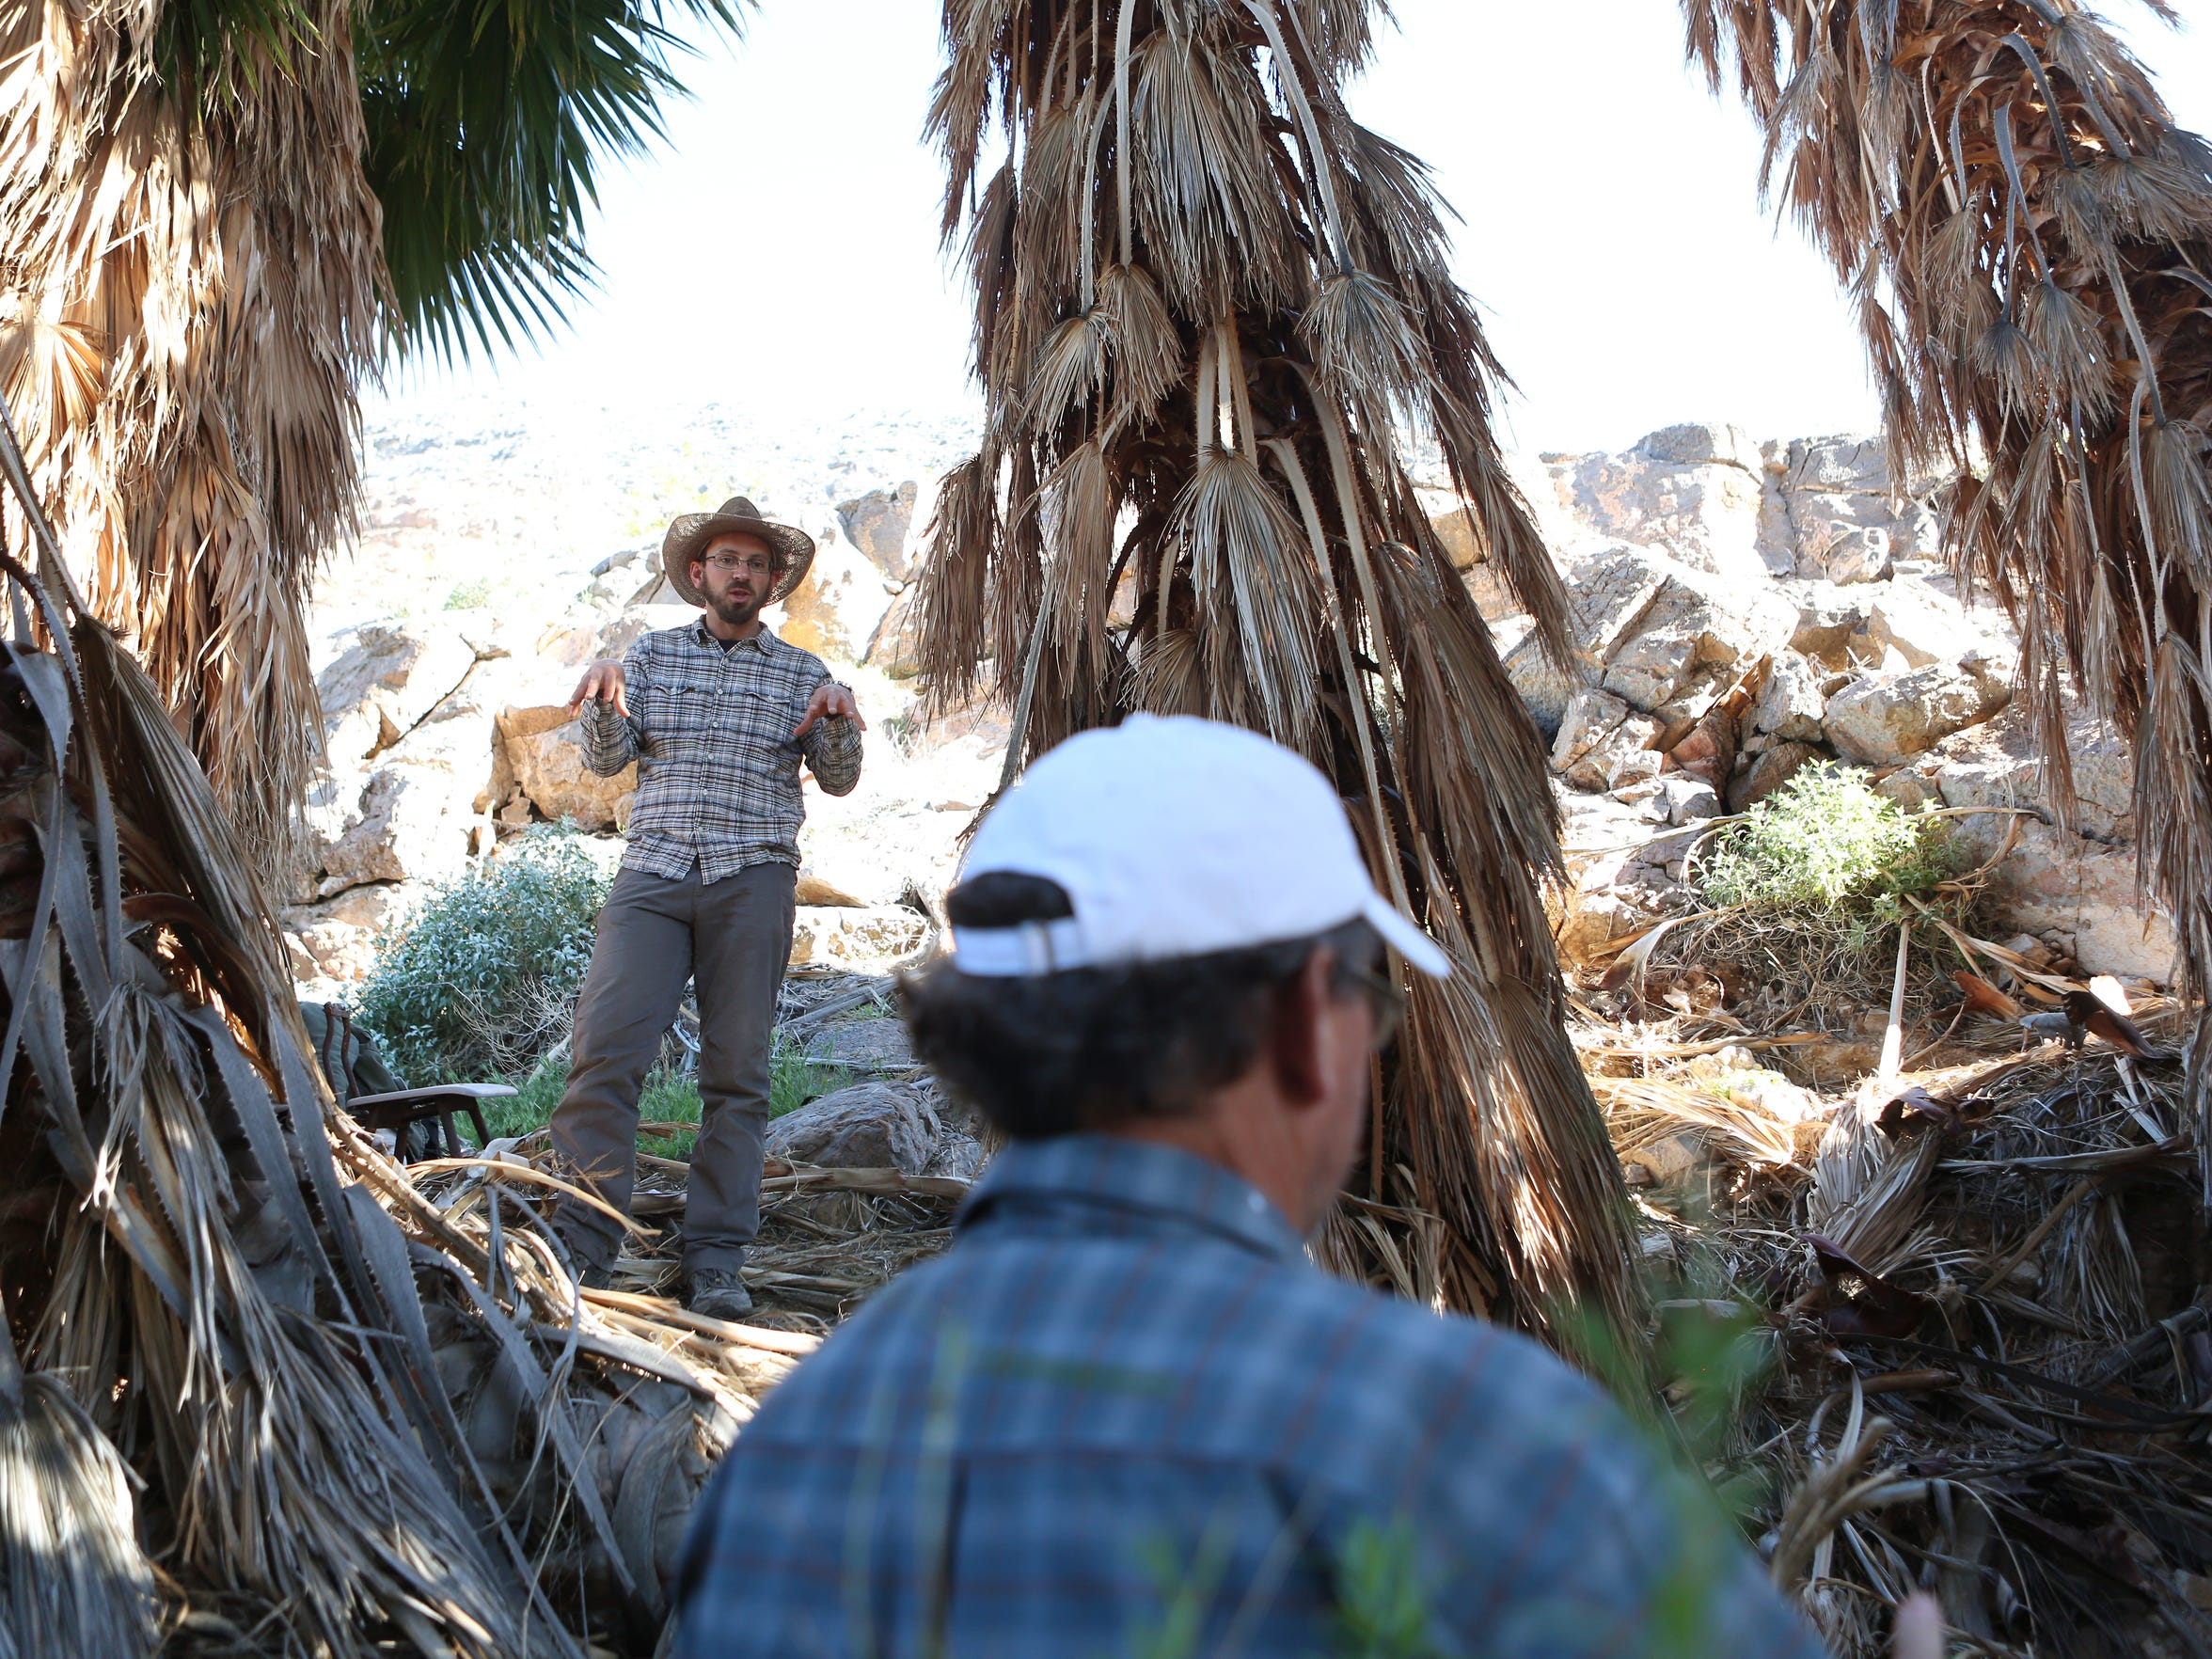 Patrick Donnelly of the Amargosa Conservancy (left) and hydrogeologist Andy Zdon collect data at Chappo Spring as part of a study of springs across the Mojave Desert.